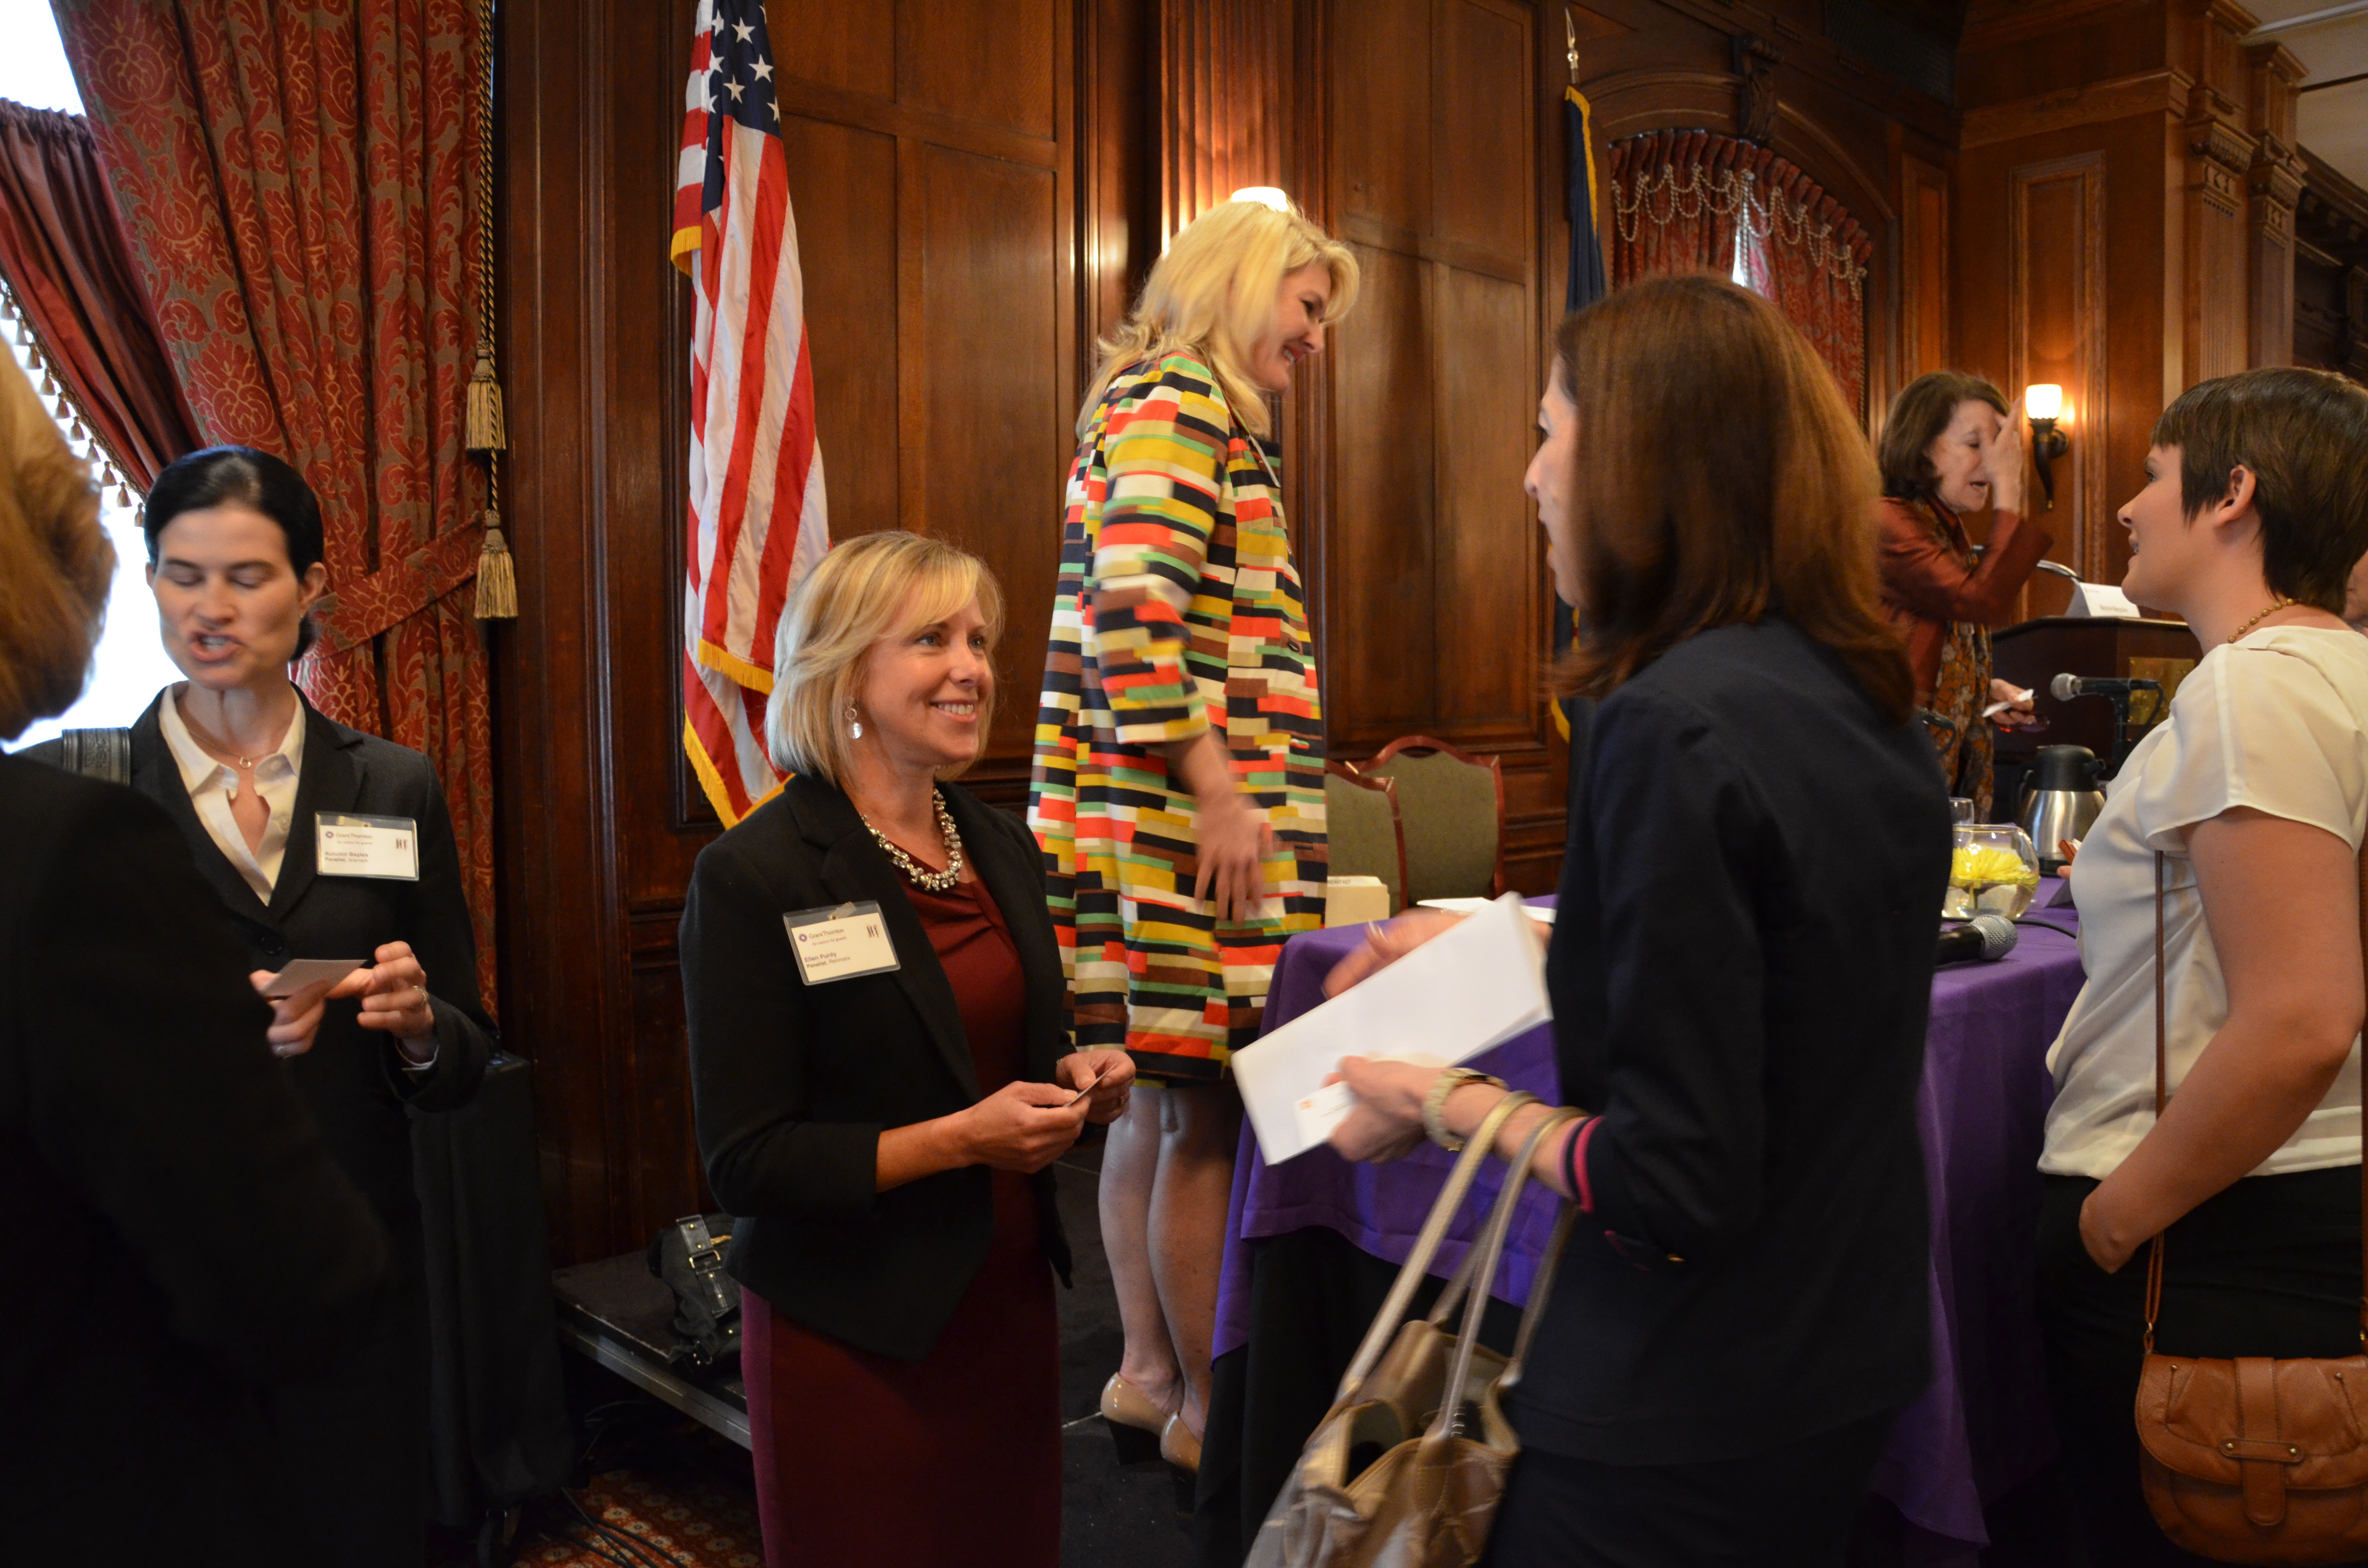 Ellen Purdy, CFO of Renmatix, meets with one of the participants after the Women@Grant Thornton event held last week at the Union League in Philadelphia.